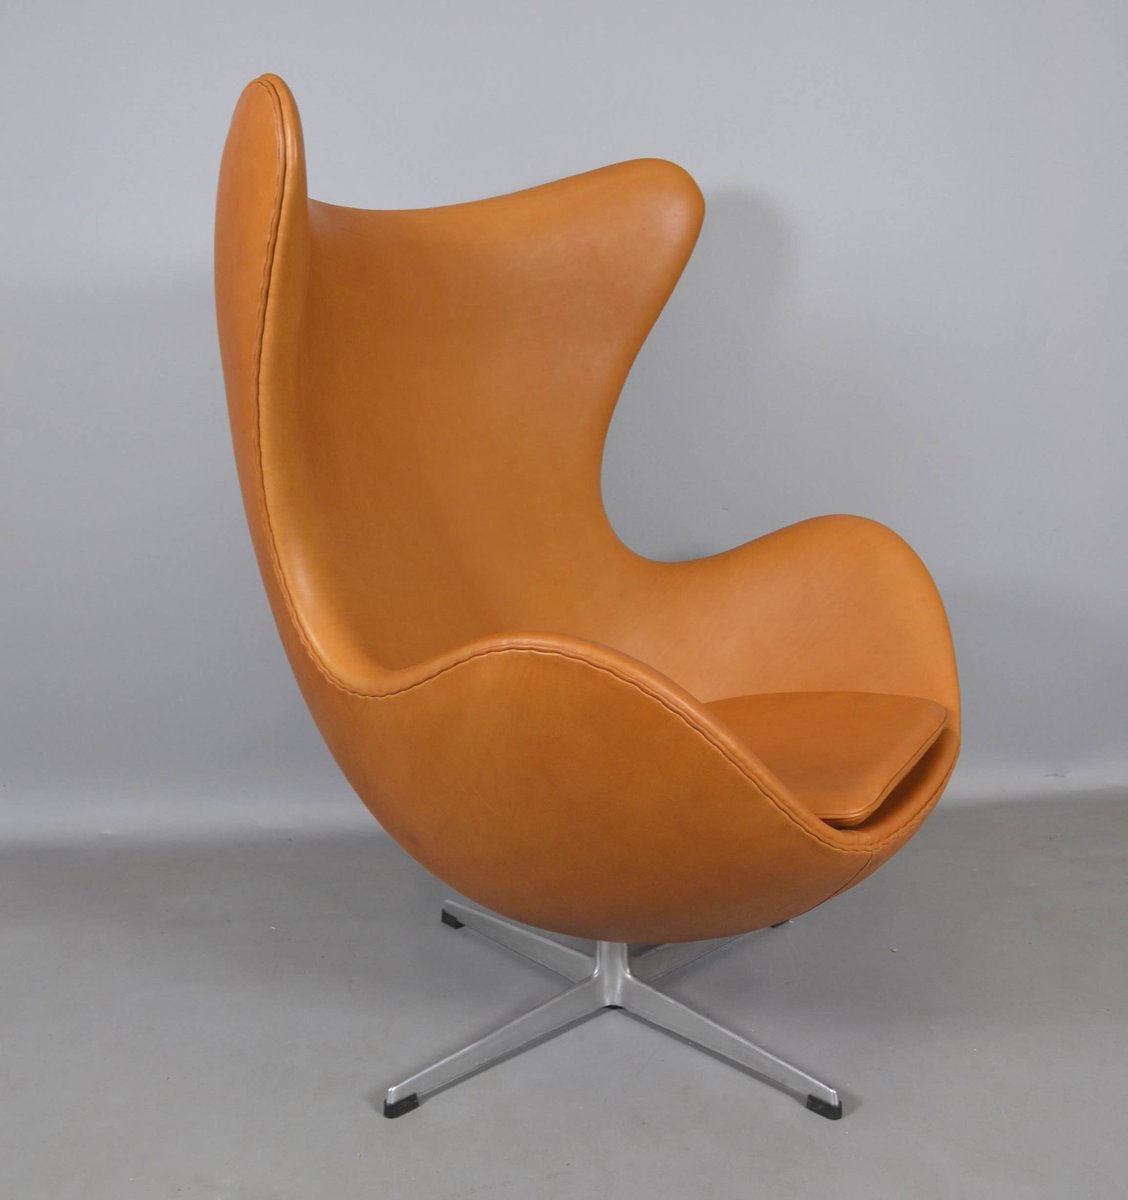 Egg Chair Fritz Hansen Leather Egg Chair And Ottoman By Arne Jacobsen For Fritz